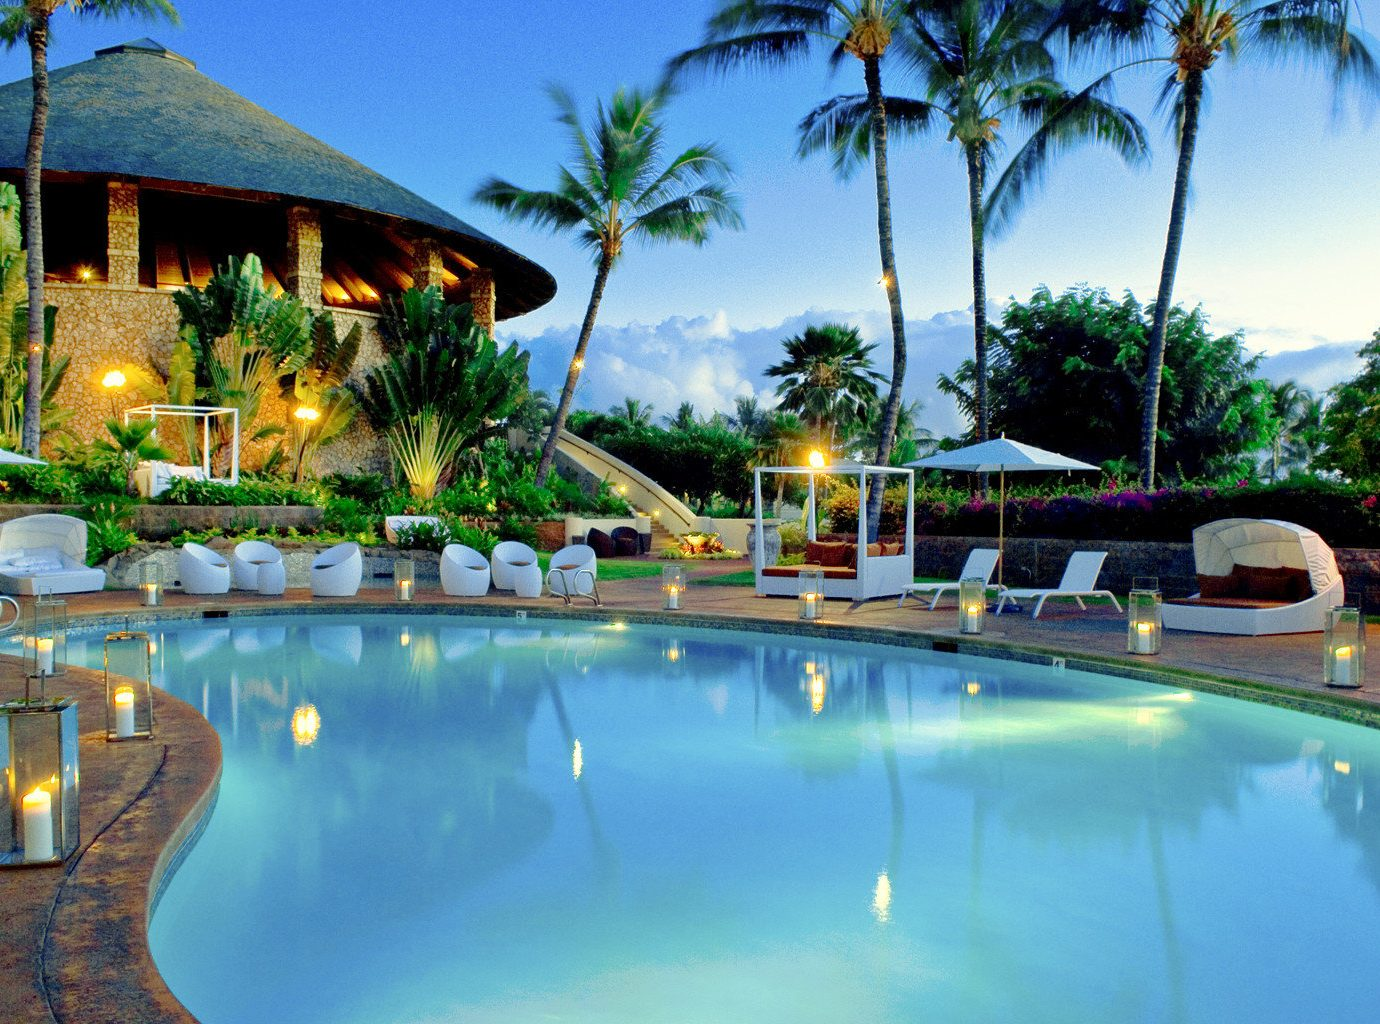 Beach Boutique Hotels Hotels Luxury Travel Romance tree sky outdoor swimming pool Resort leisure property estate vacation resort town Villa real estate eco hotel lined